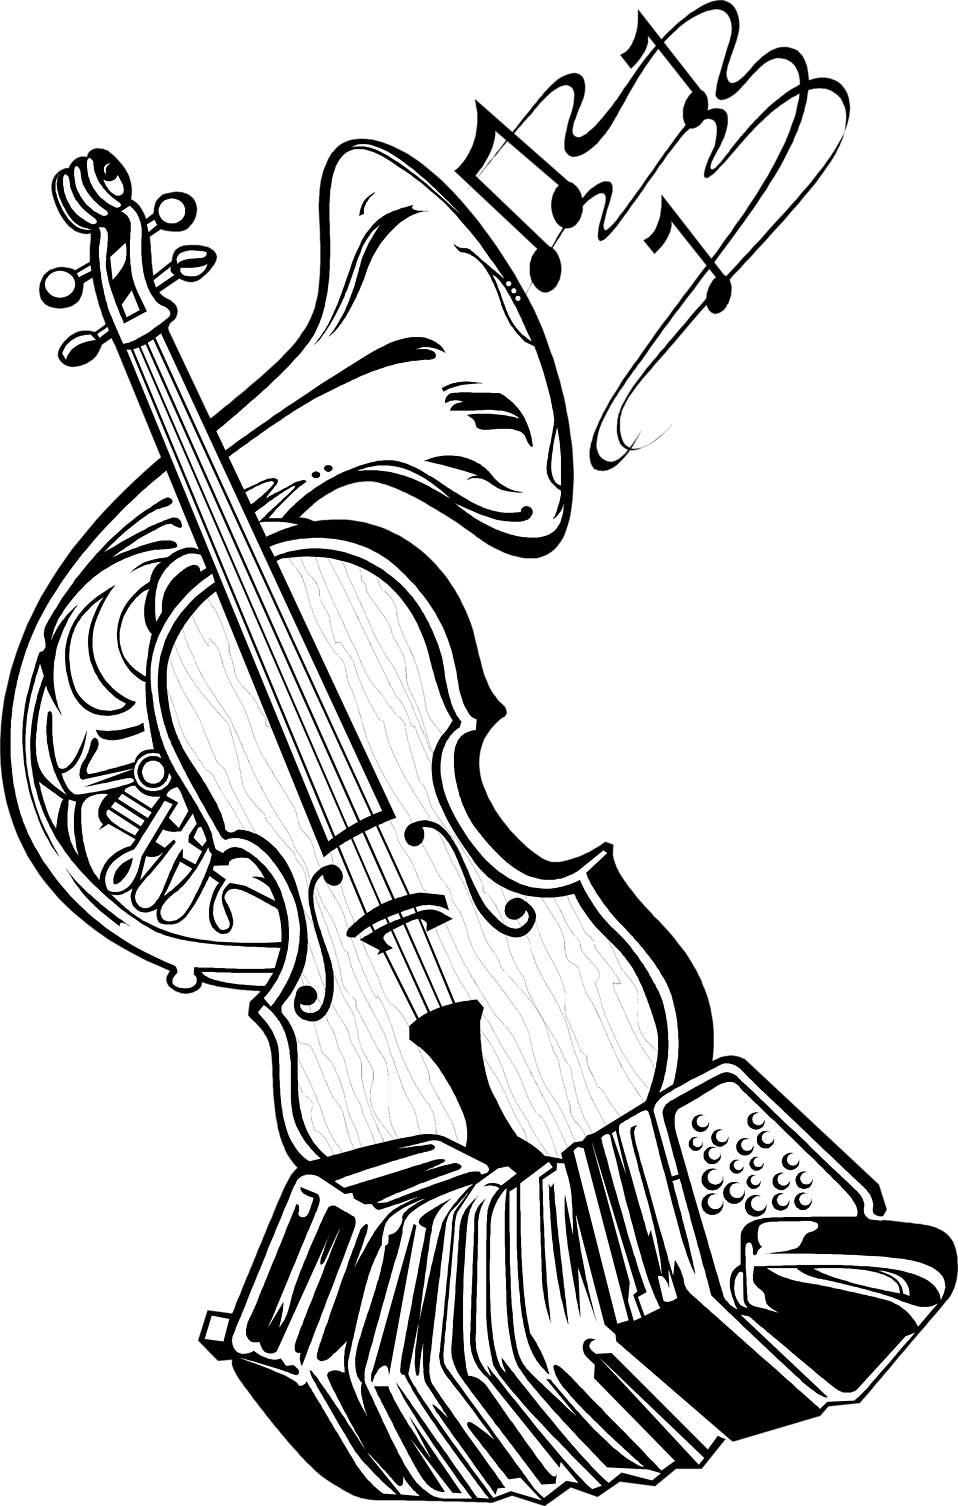 Tool clipart music. Instruments free stock photo